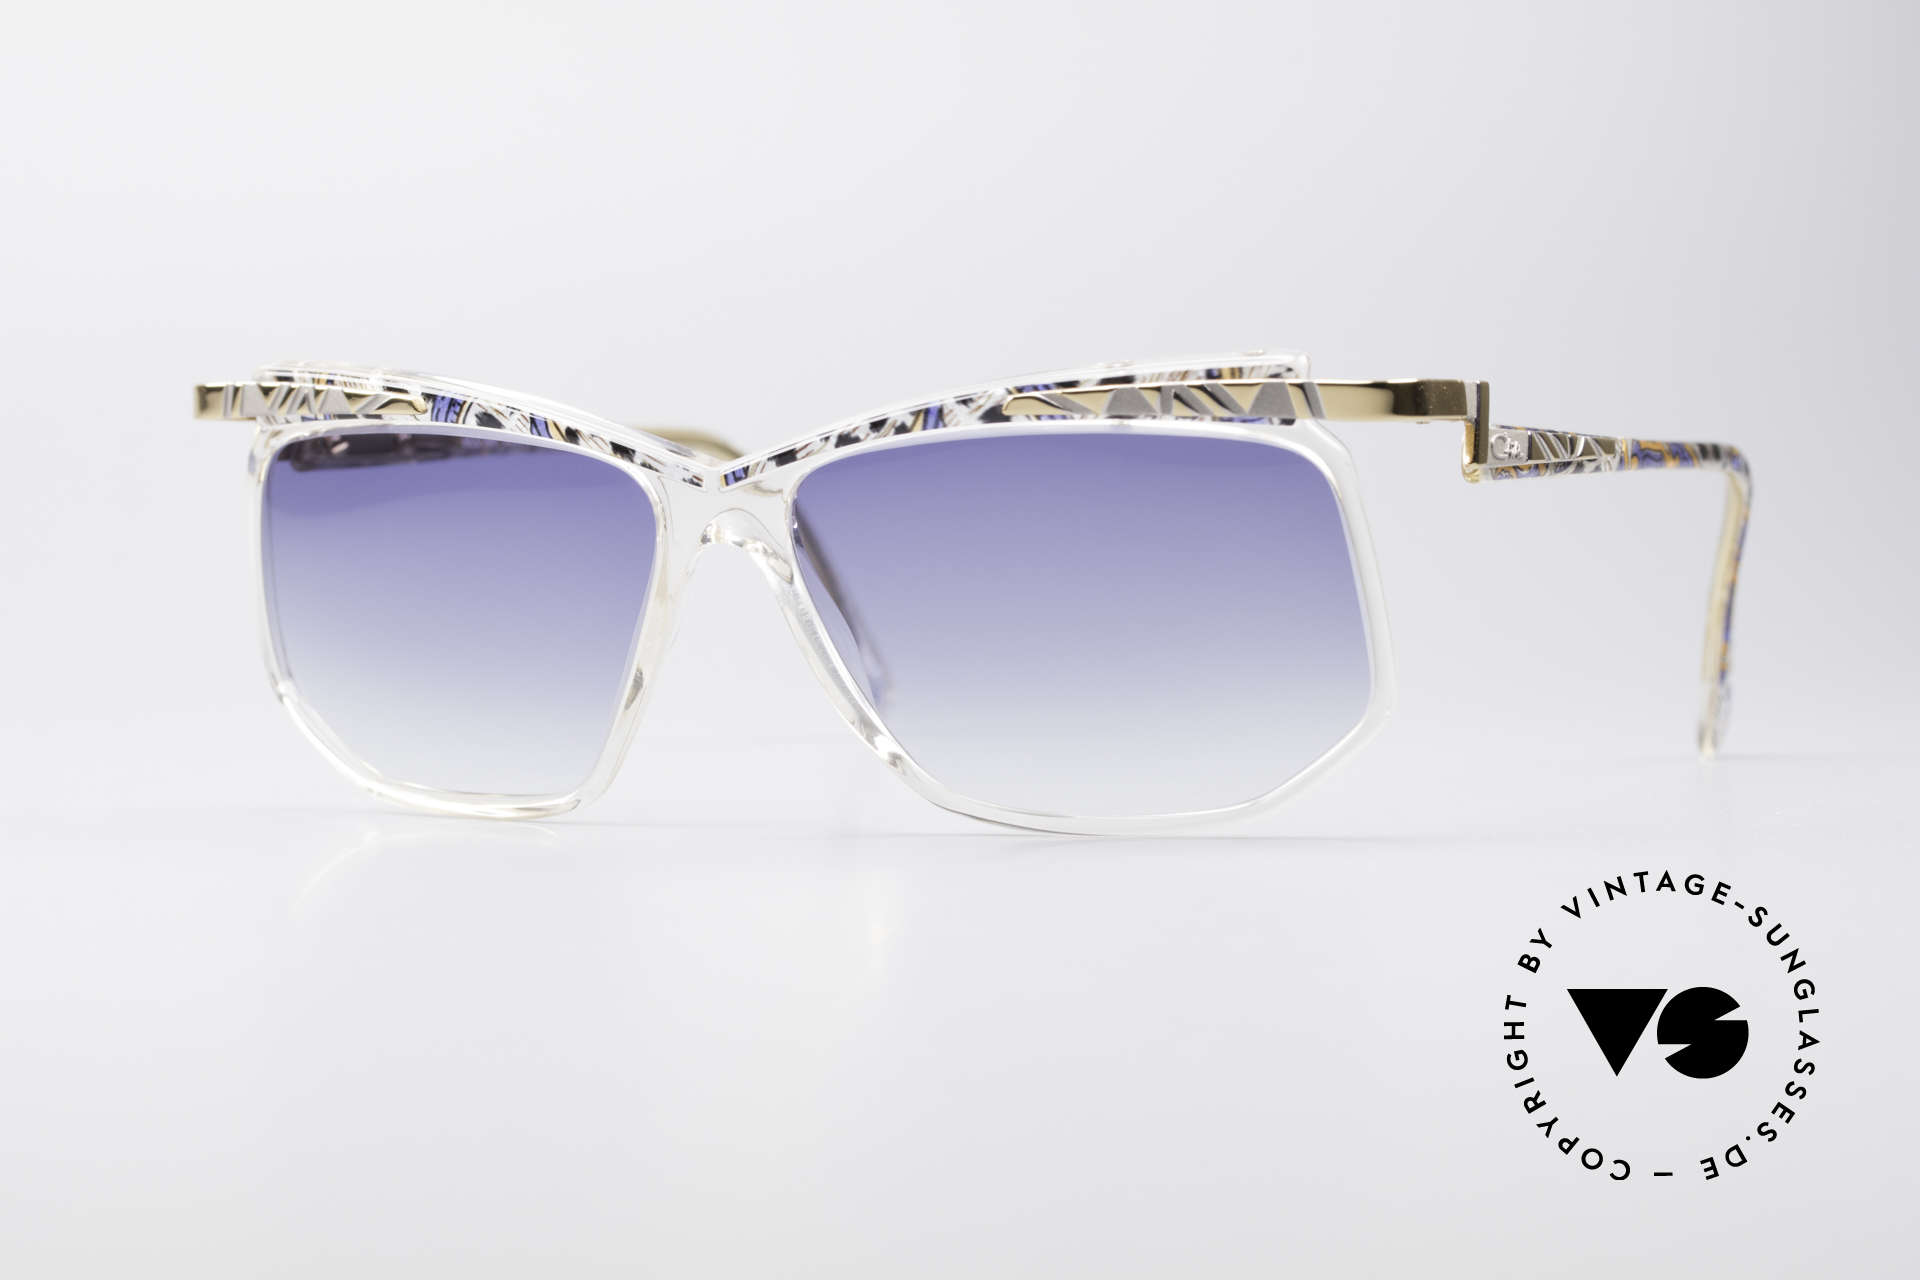 Cazal 366 Crystal Vintage 90's Hip Hop, VINTAGE DESIGNER sunglasses by CAZAL from 1996, Made for Men and Women